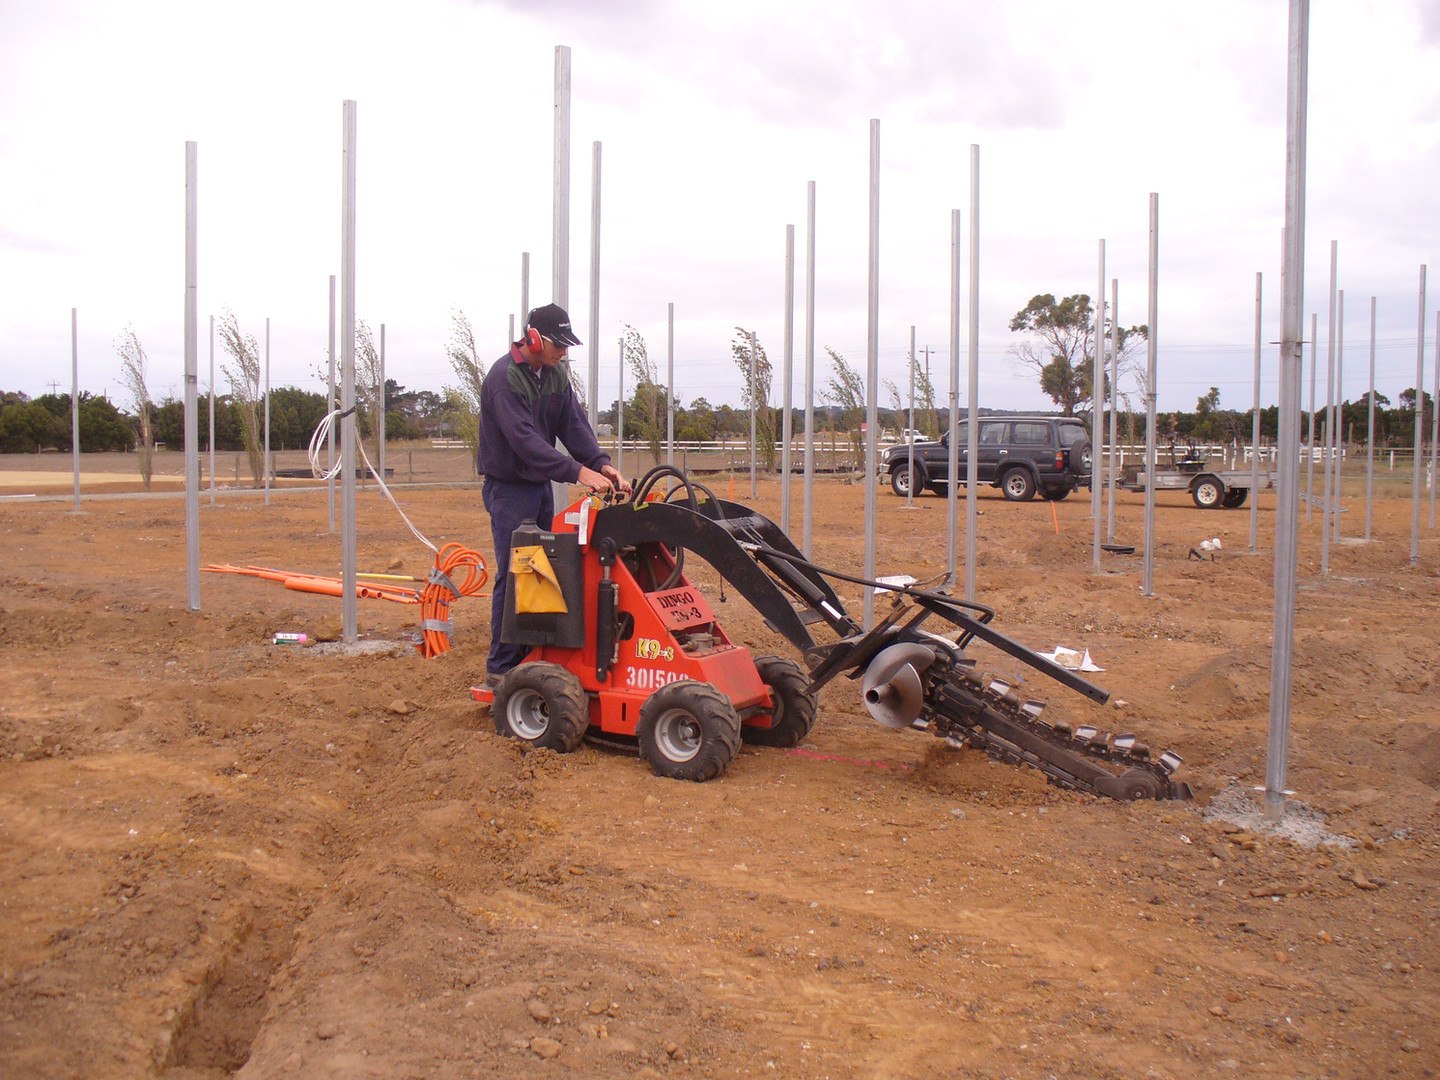 Jason digging trenches for water pipes and electrical underground.